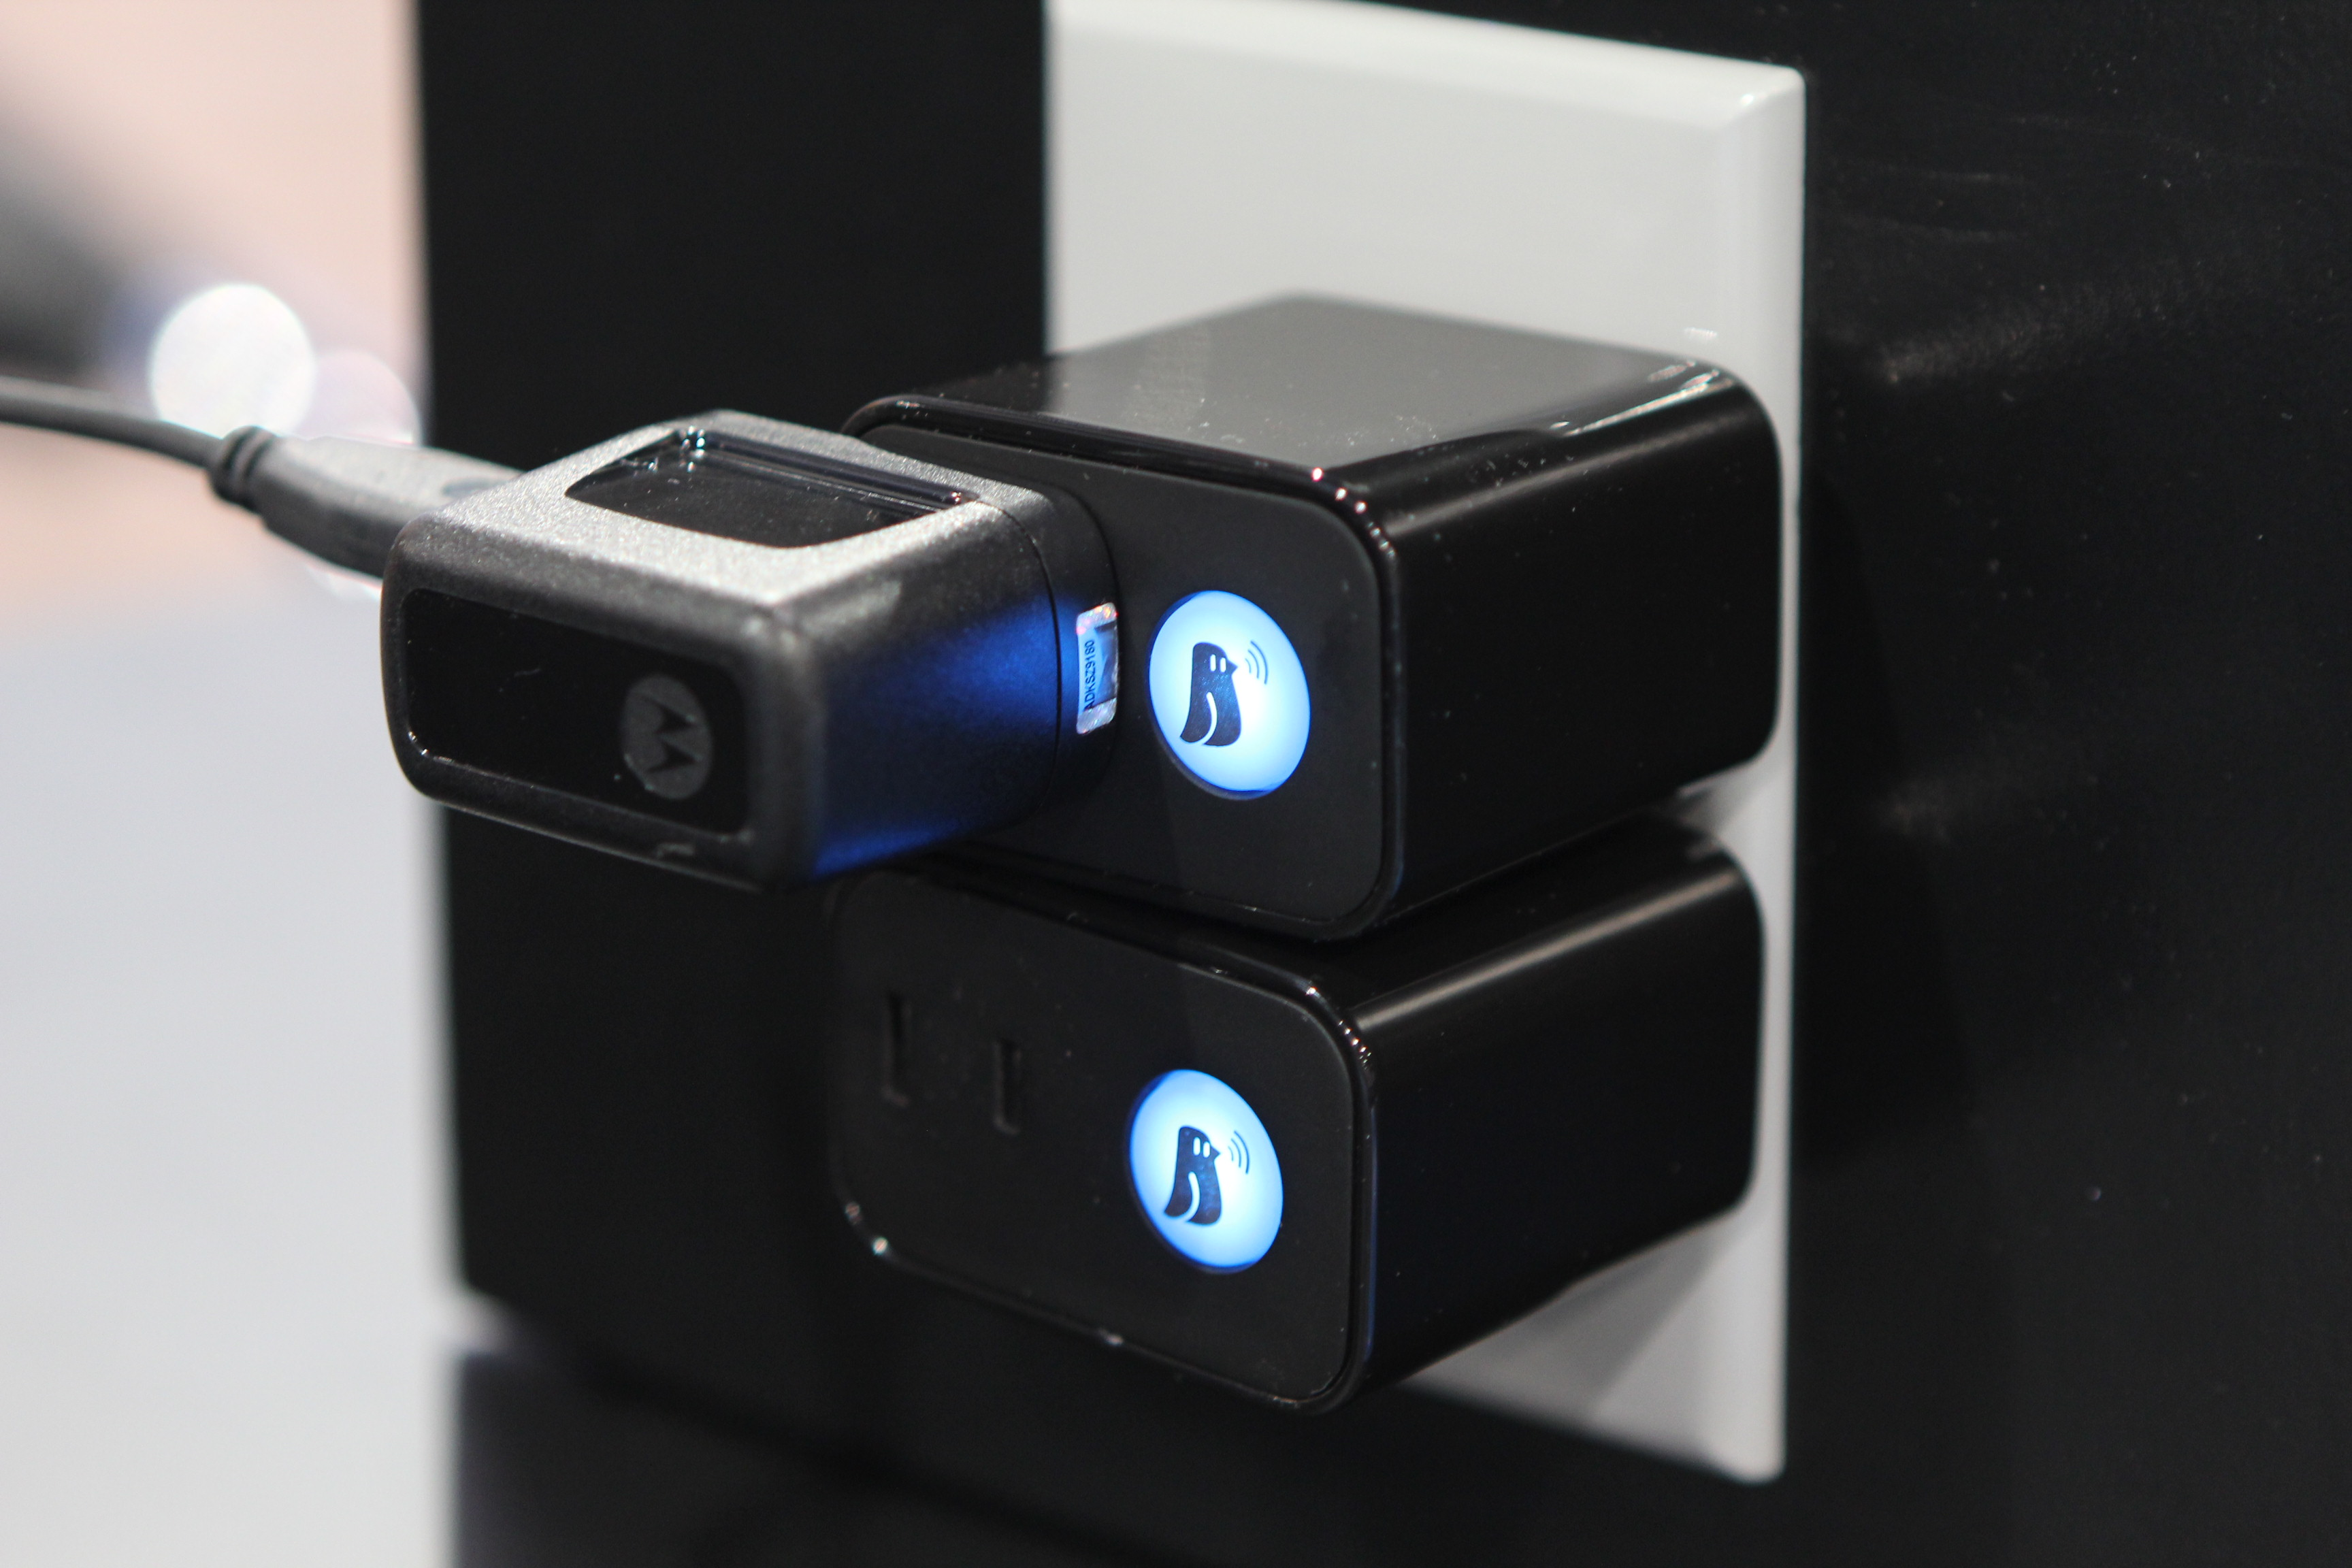 Ever wonder how to stop forgetting phone chargers? Perch has your answer [Video]